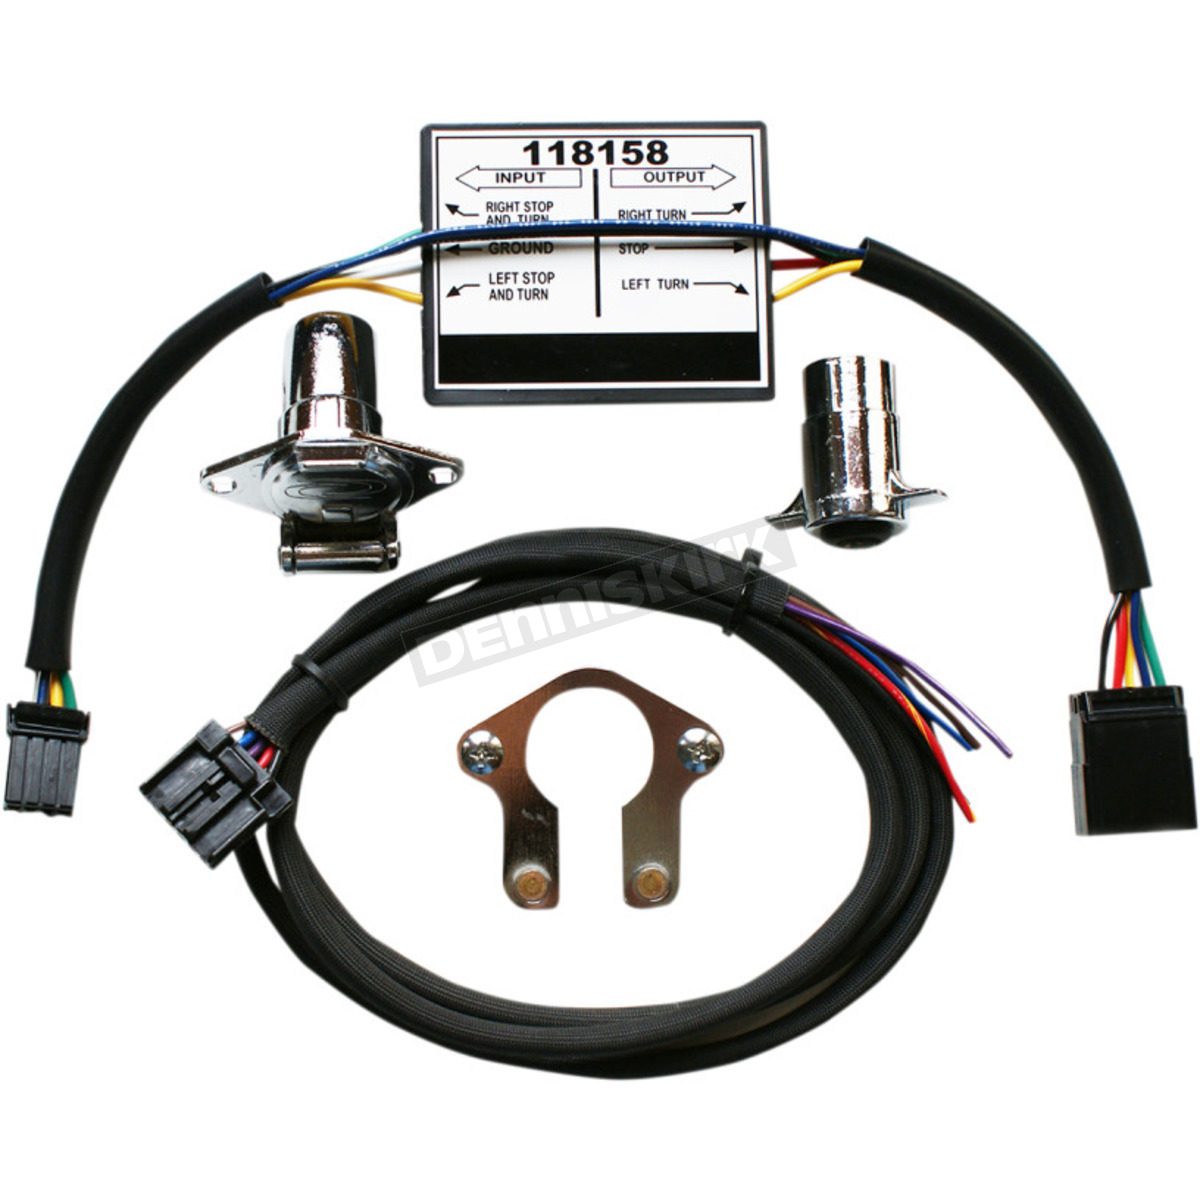 Khrome Werks Four to Five Wire Plug and Play Converter - 720753 ...